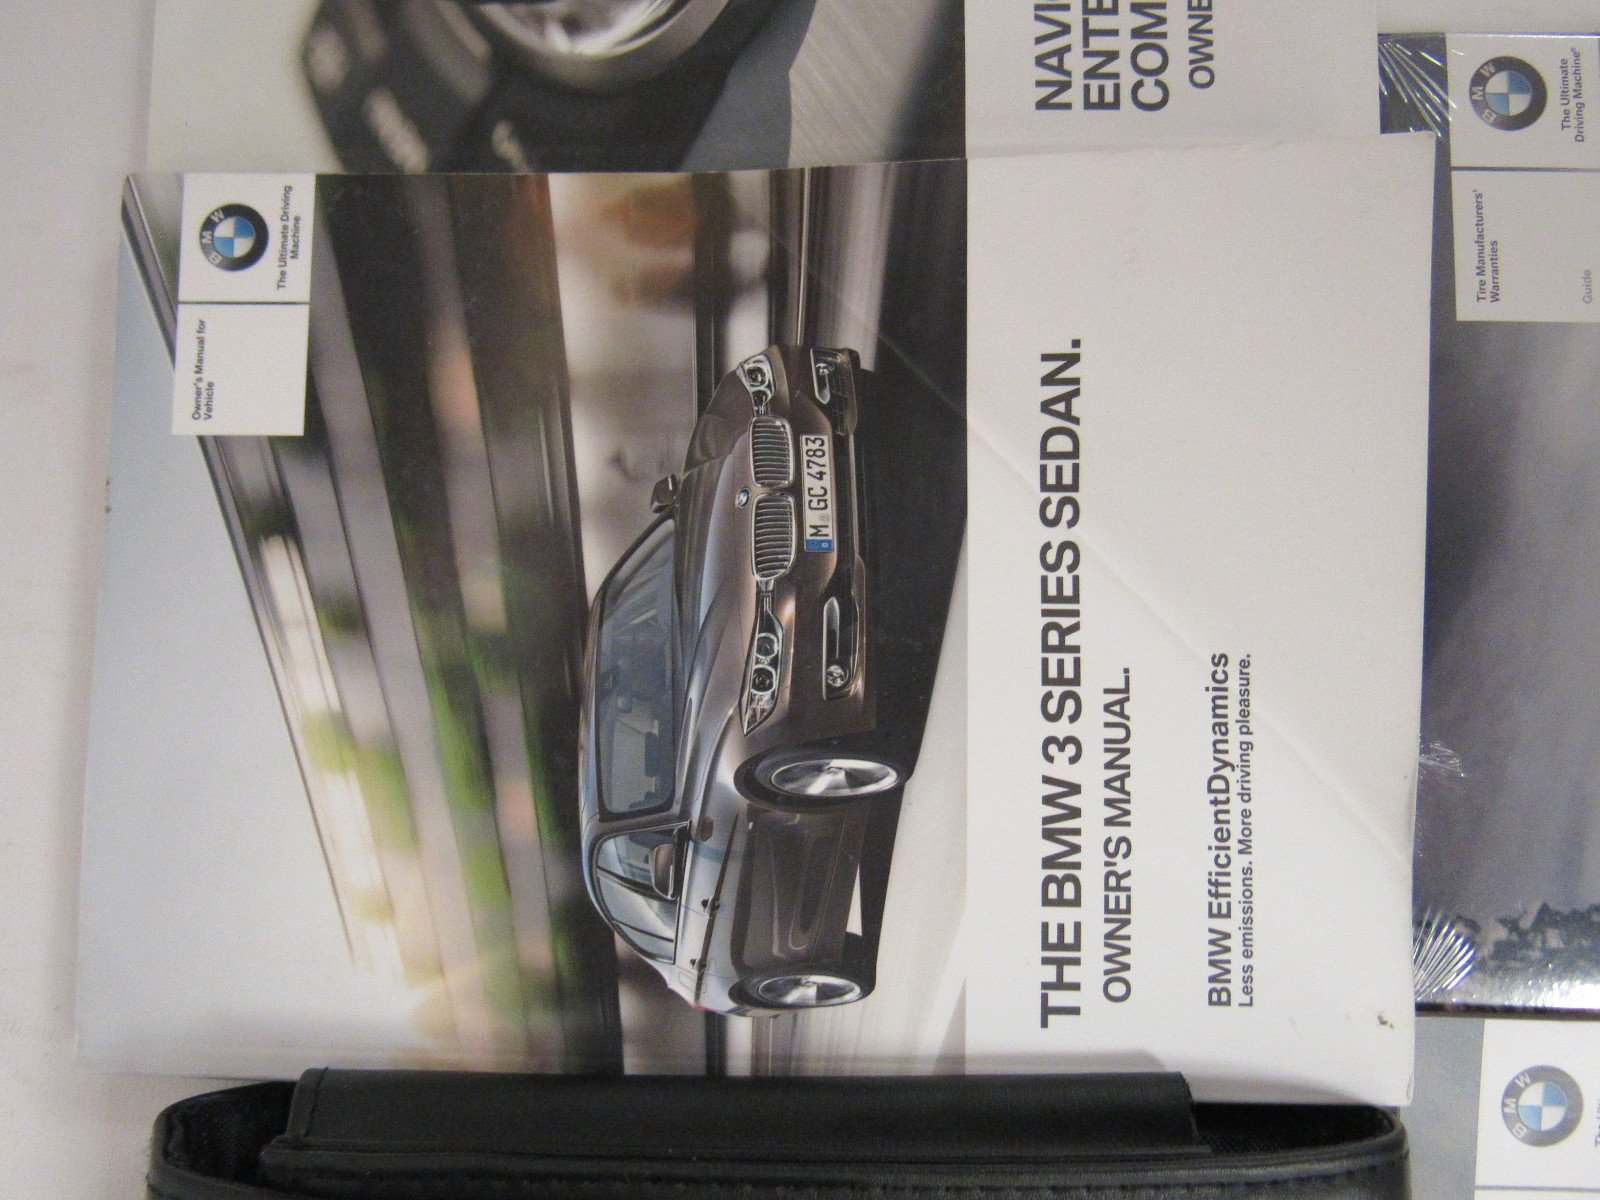 2014 BMW 3 Series Sedan owners manual set with cover case and ...